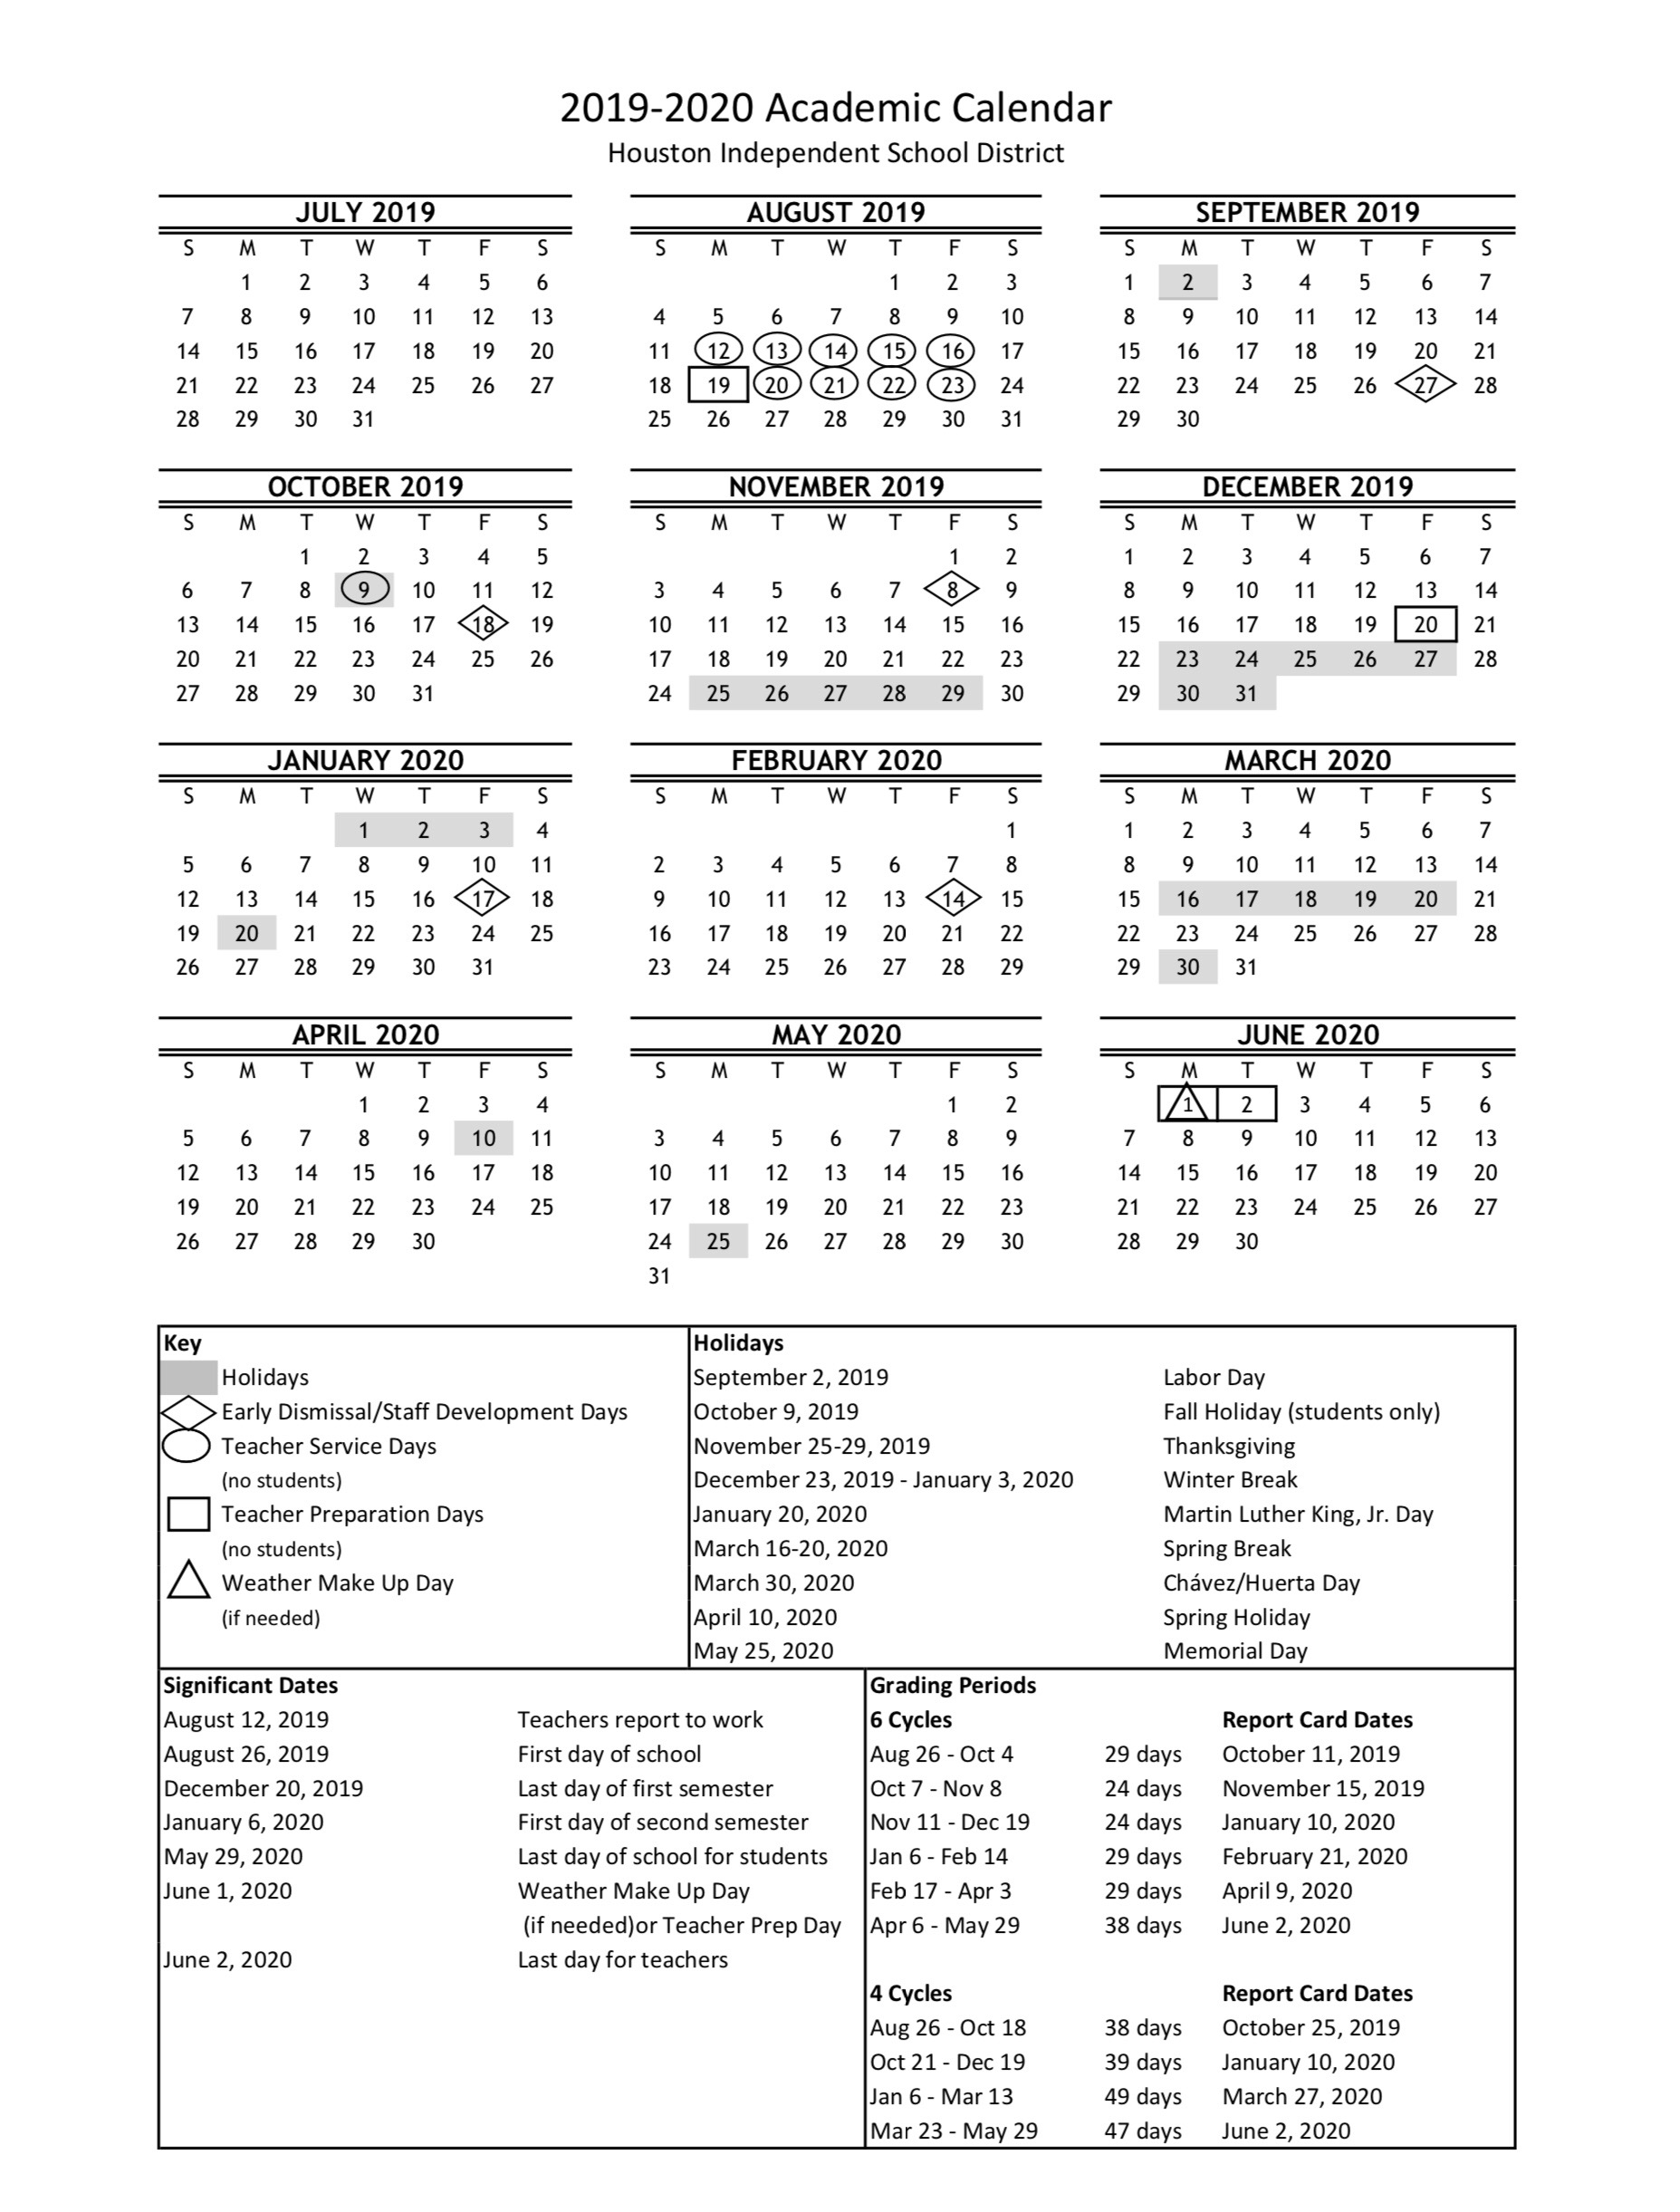 HISD academic calendar for 2019 20 is finalized — with a new